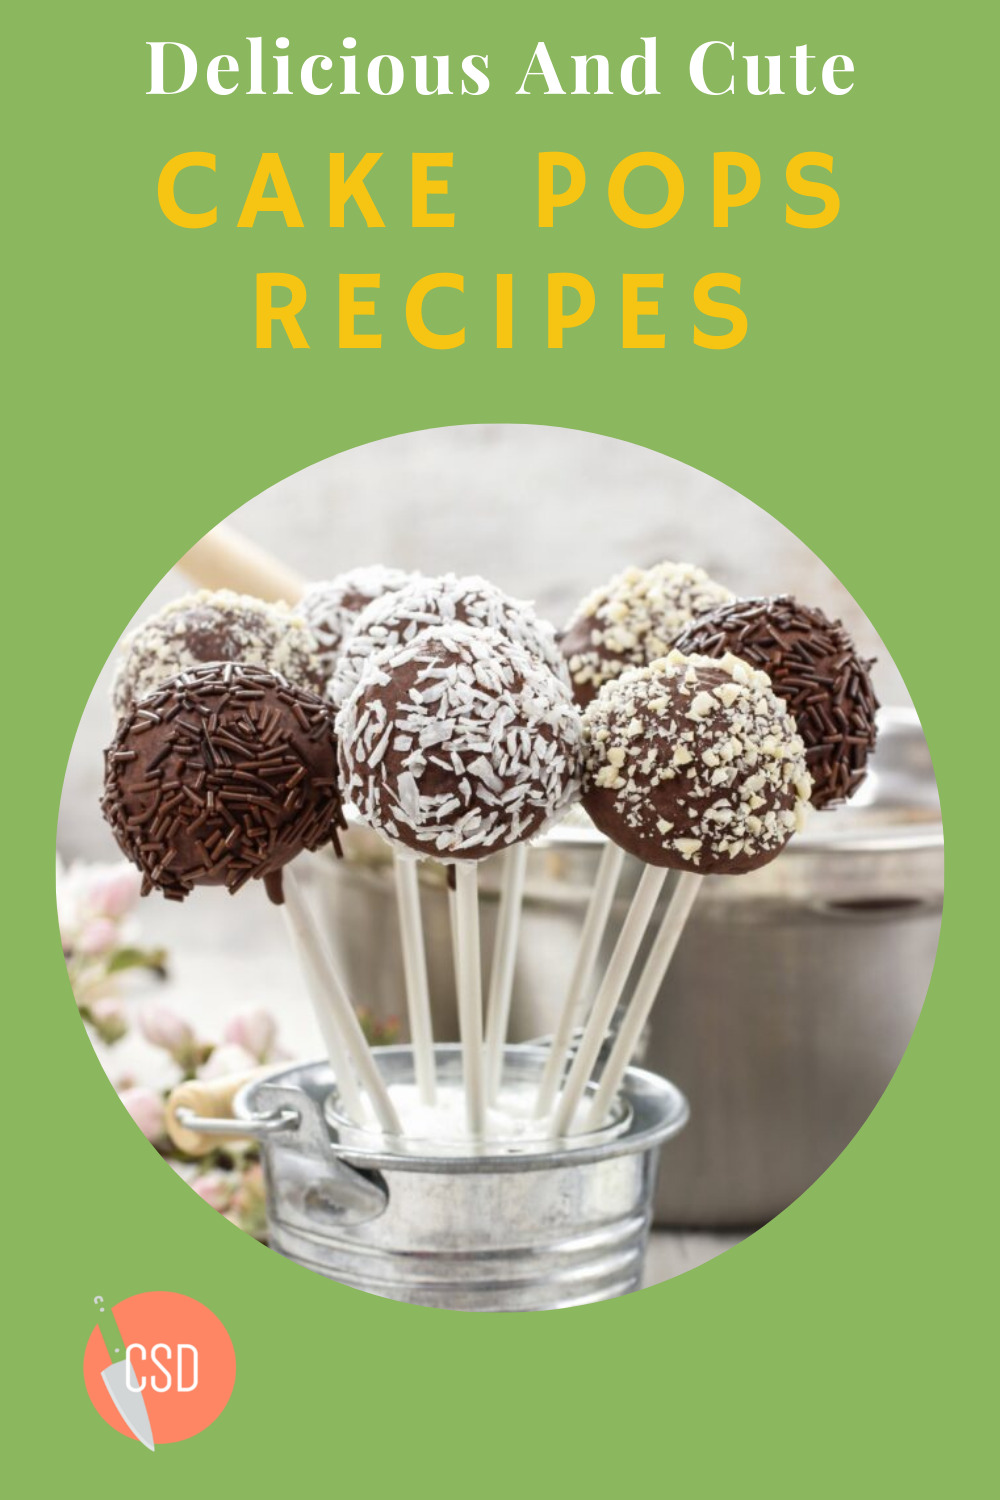 Cutsidedown.com is loaded with the best food and drink recipe ideas for any occasion. Find out what you should prepare for your next event. These cake pop recipes are cute, sweet, and absolutely delicious.